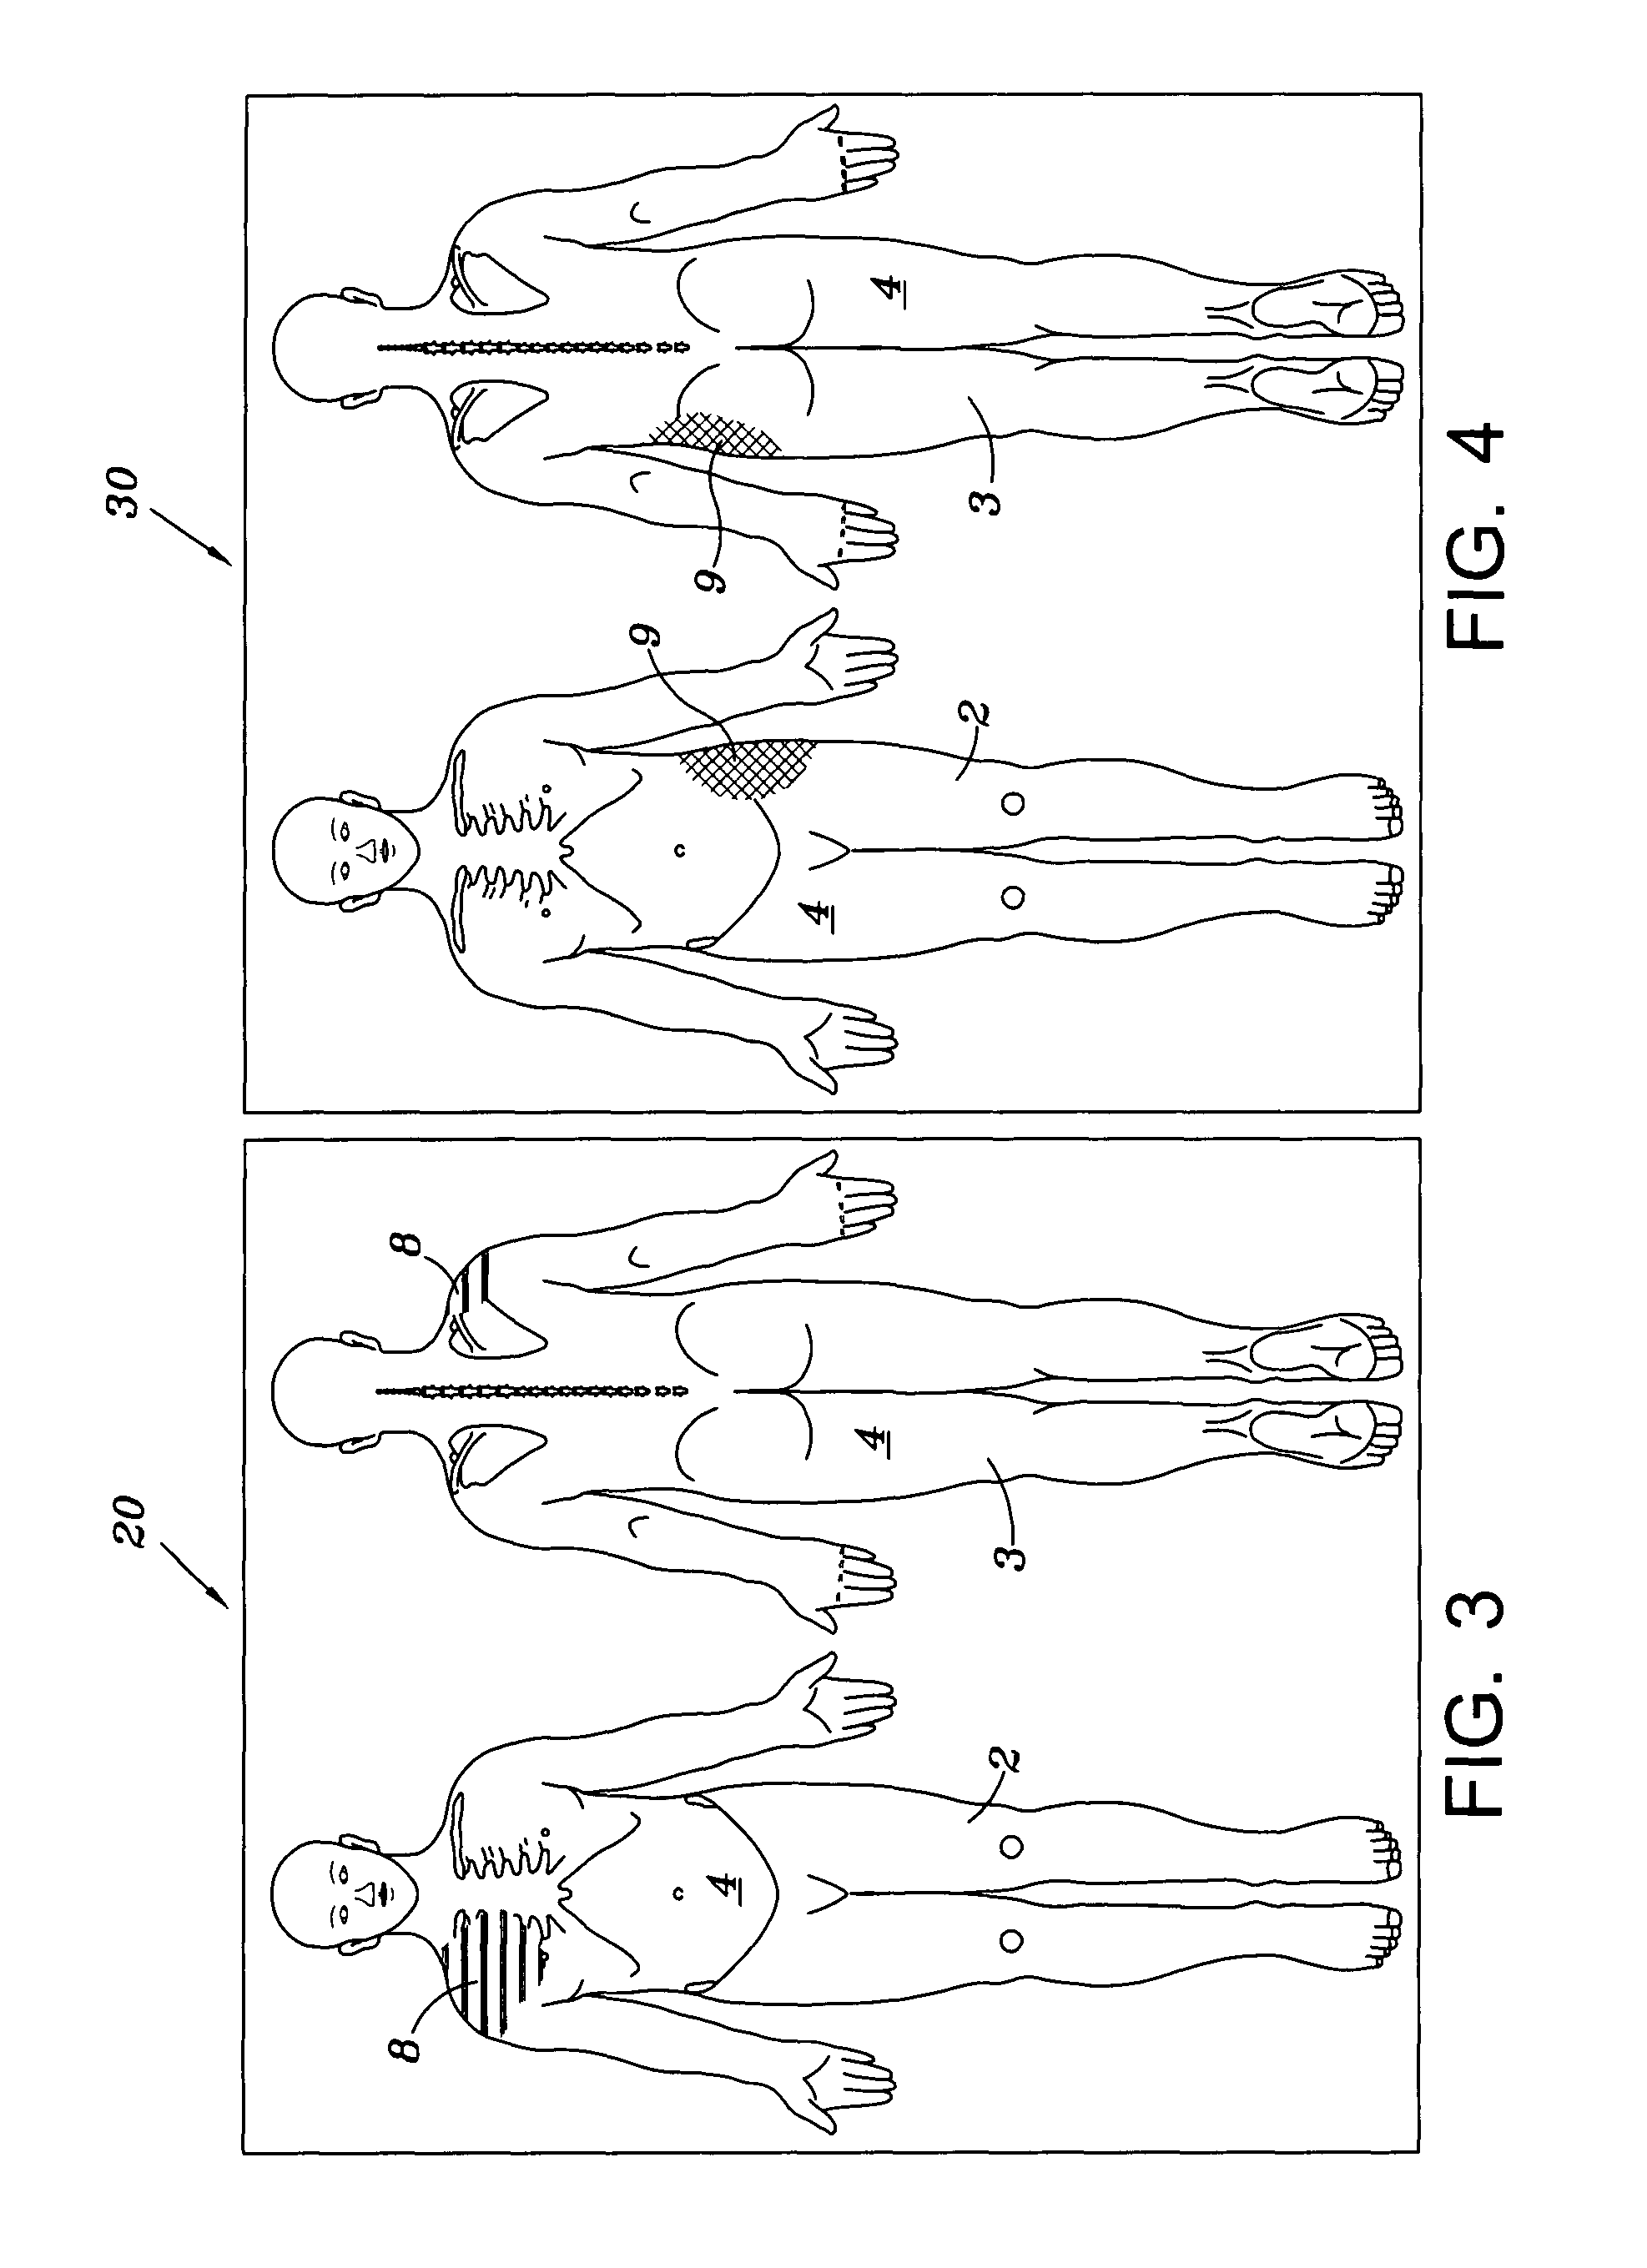 It is a graphic of Fan Printable Skin Assessment Form